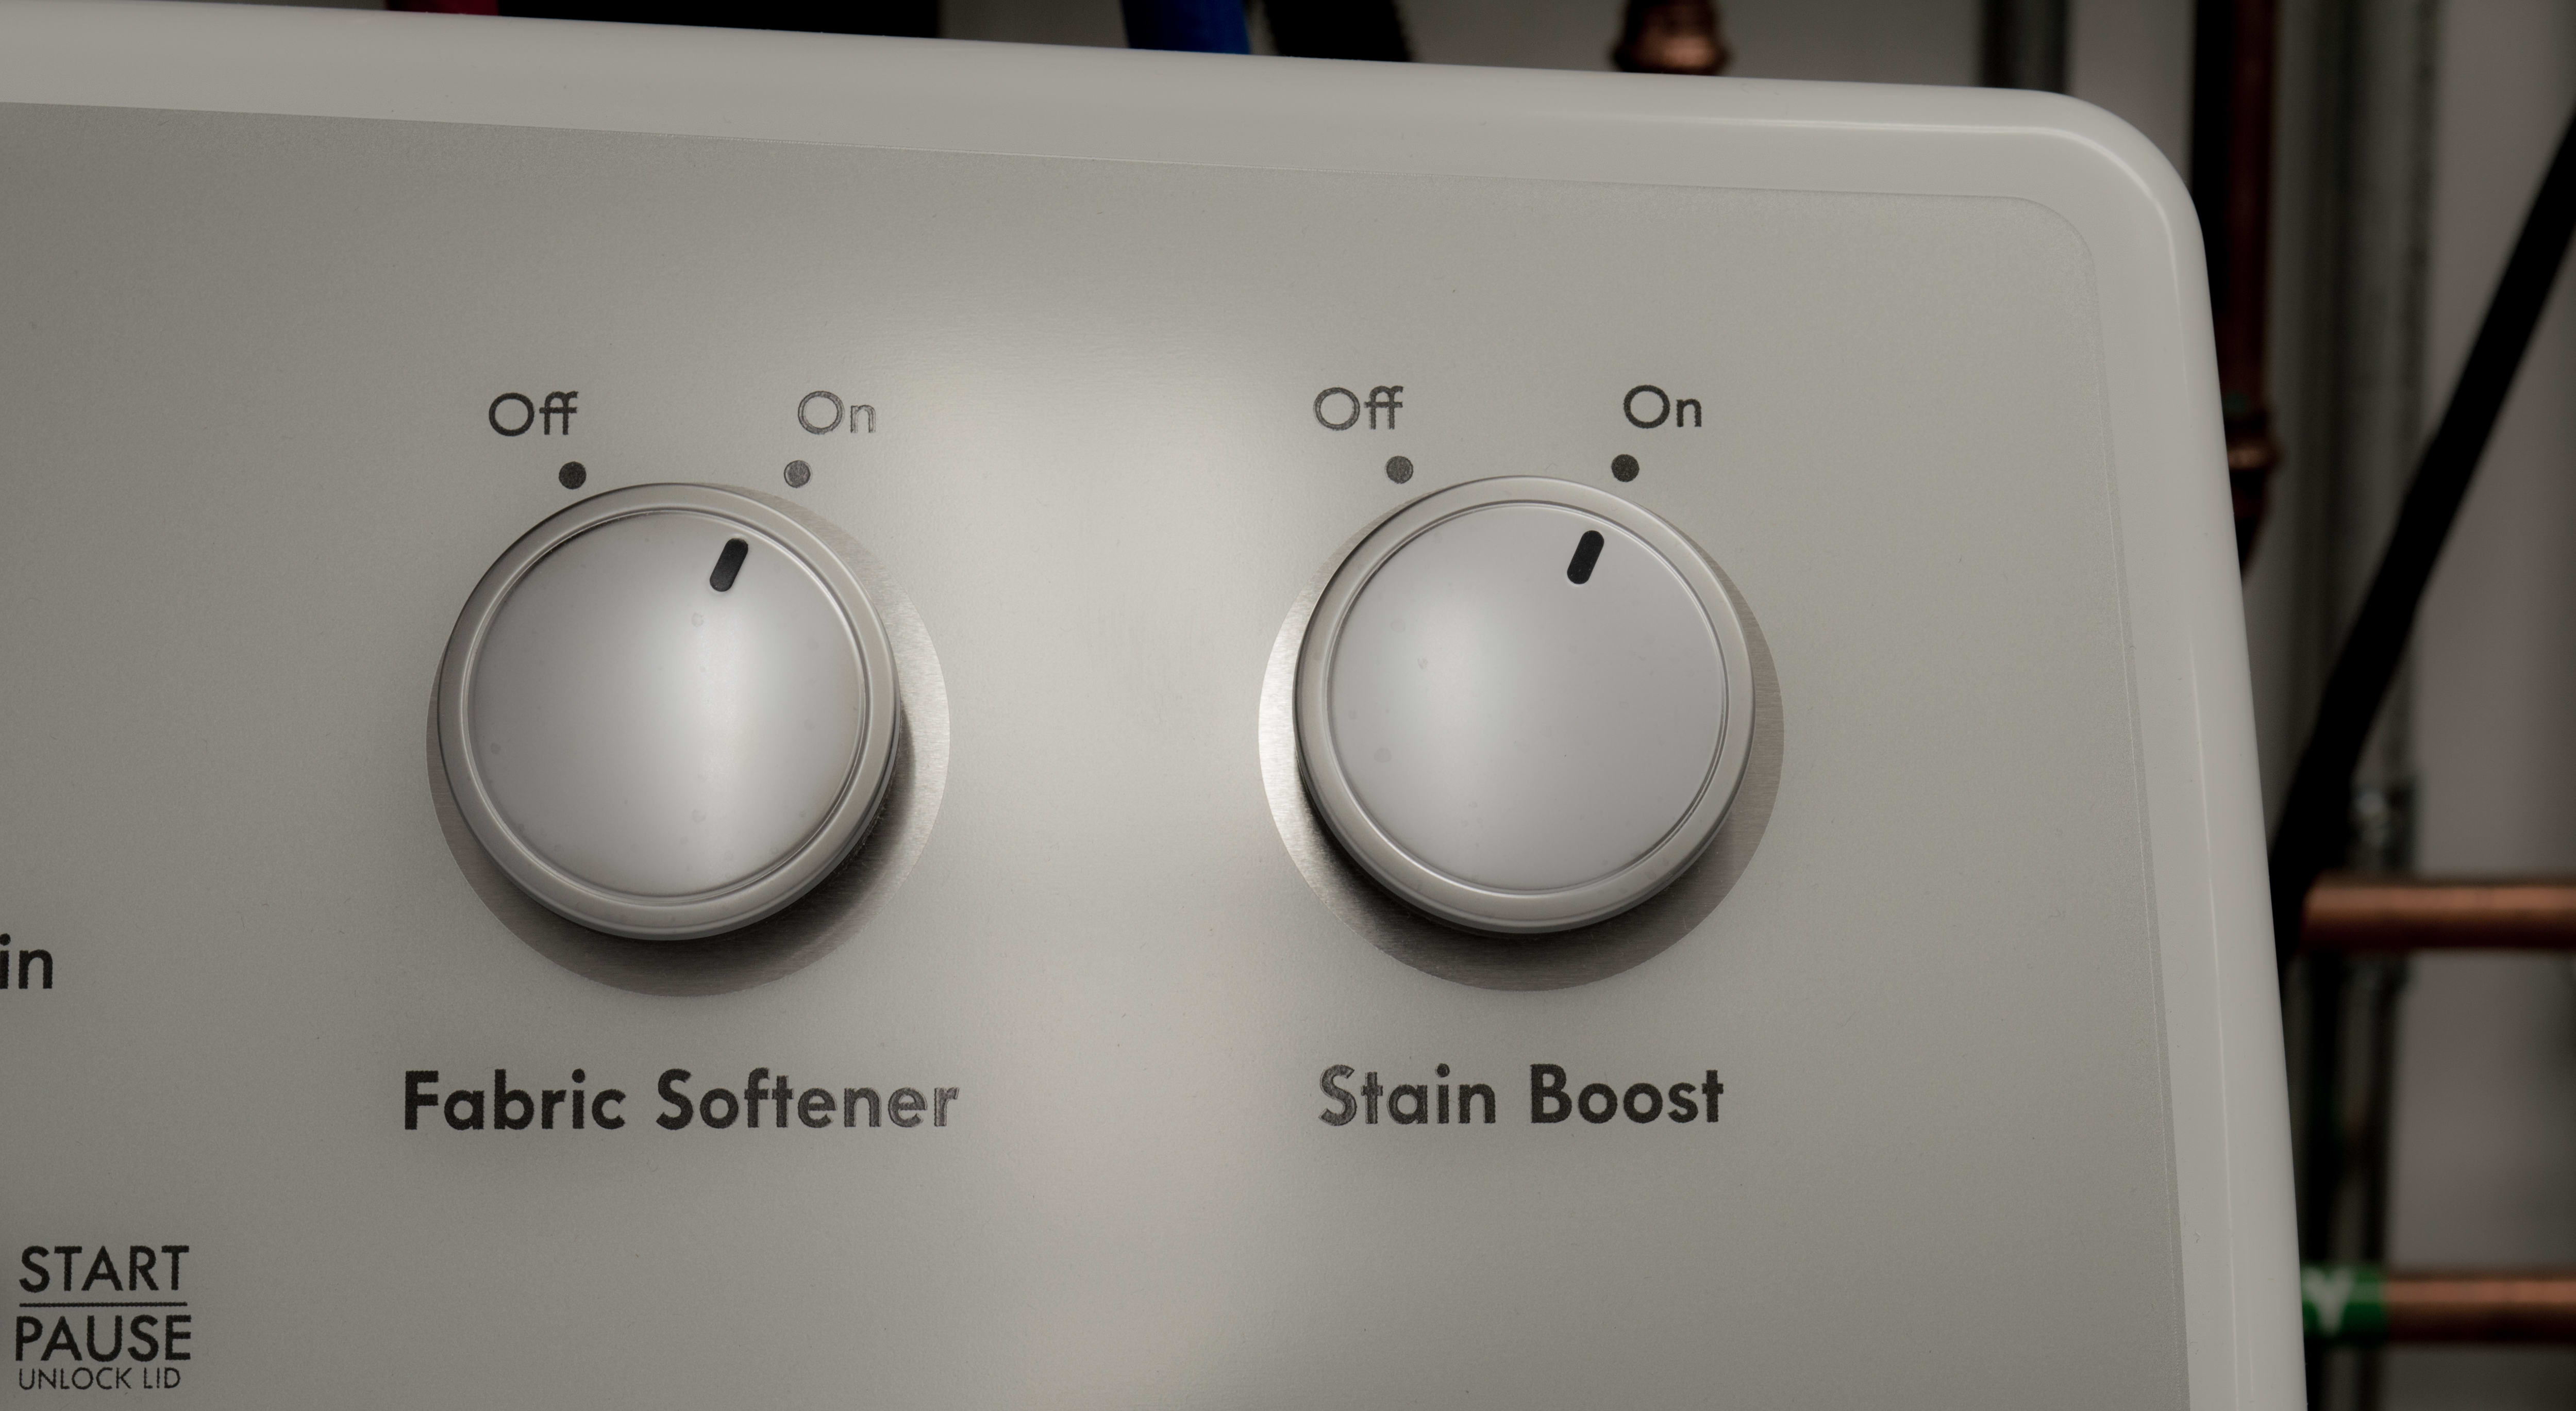 Stain Boost allows you to prolong selected cycles.